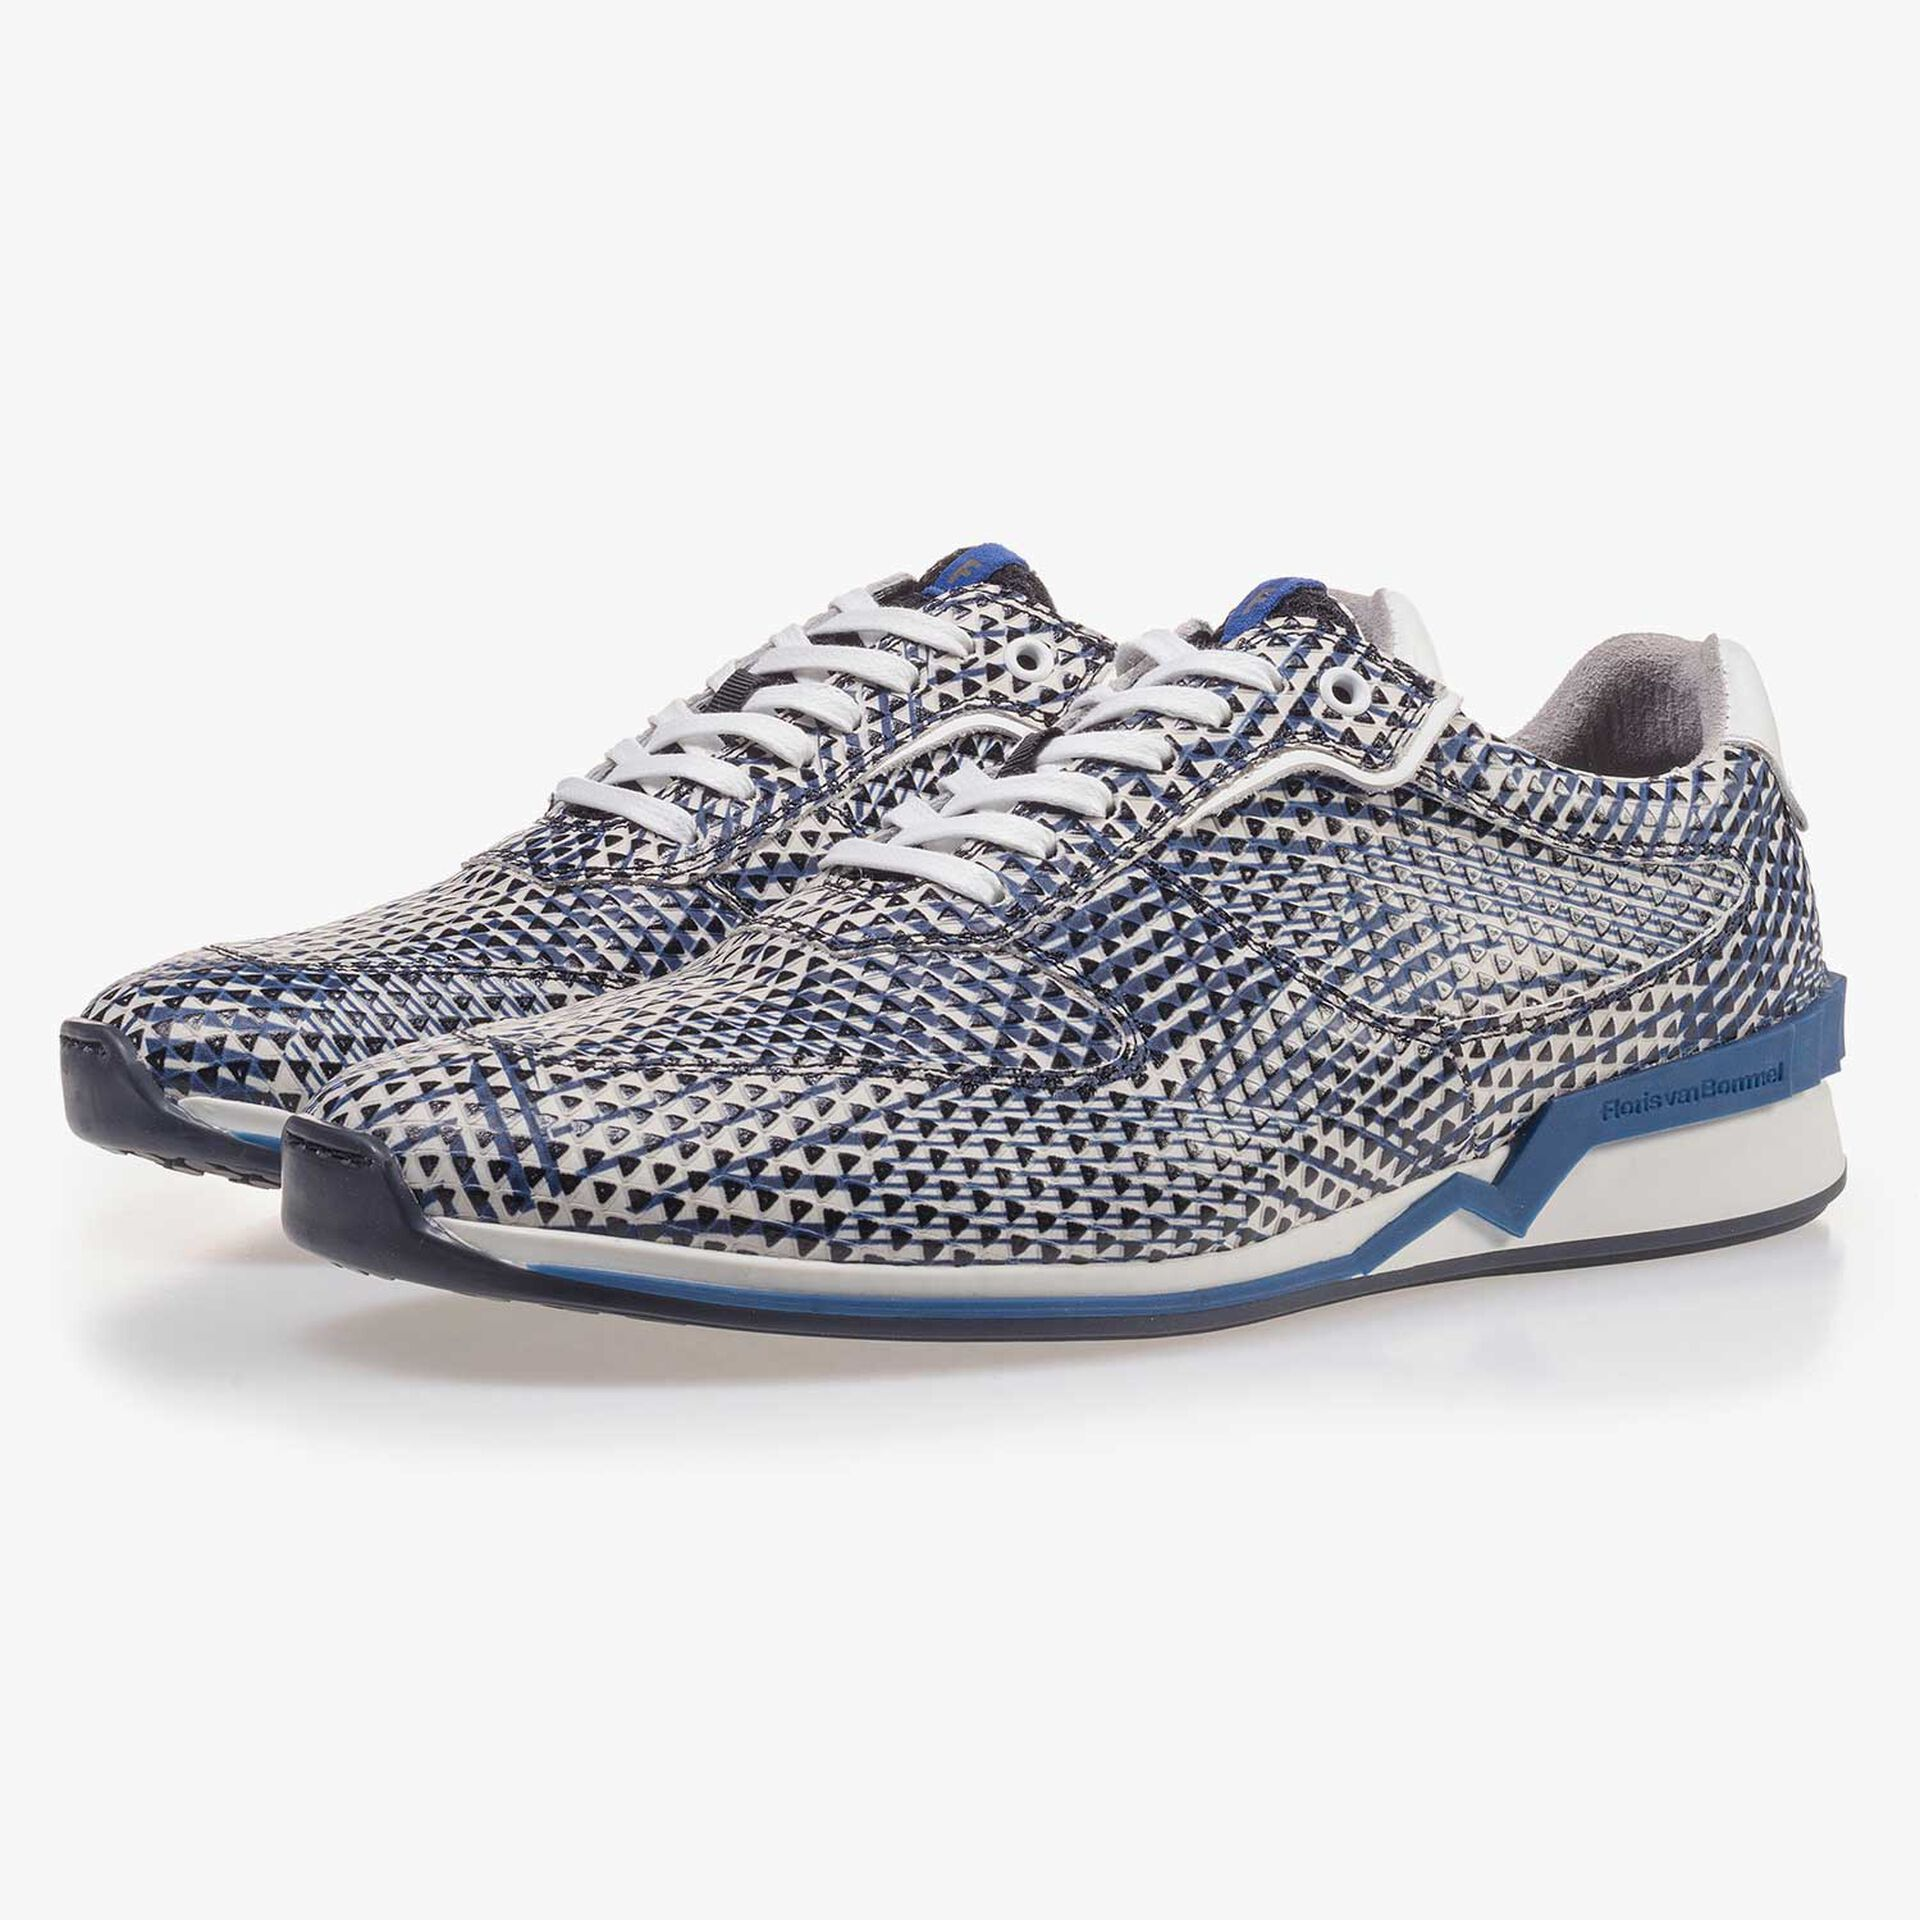 Blue/white patterned leather sneaker